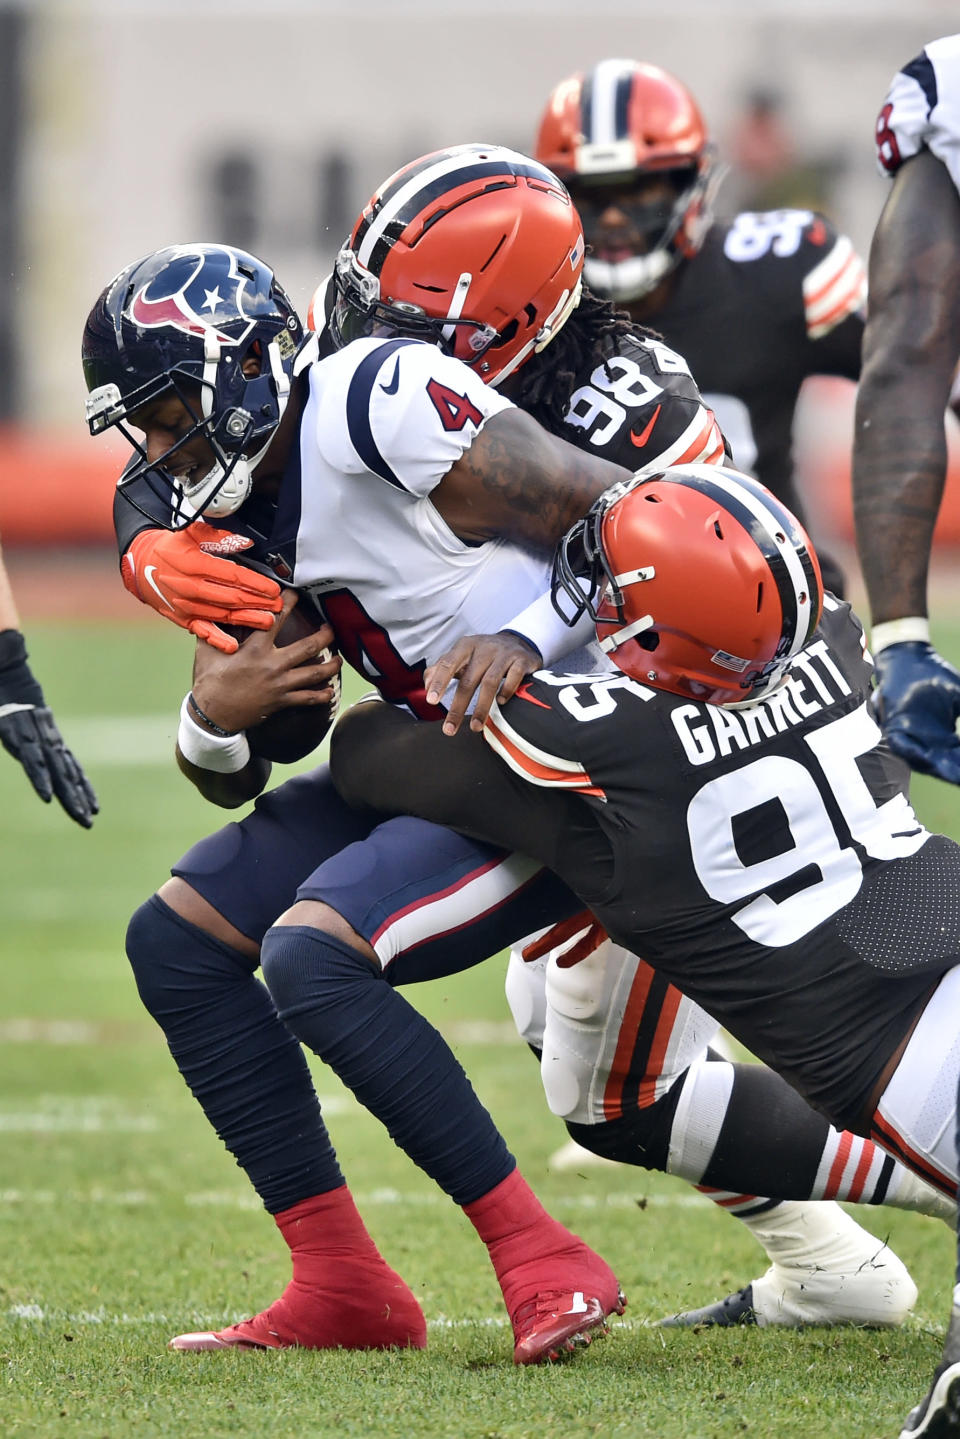 Cleveland Browns defensive end Myles Garrett (95) sacks Houston Texans quarterback Deshaun Watson (4) during the first half of an NFL football game, Sunday, Nov. 15, 2020, in Cleveland. (AP Photo/David Richard)